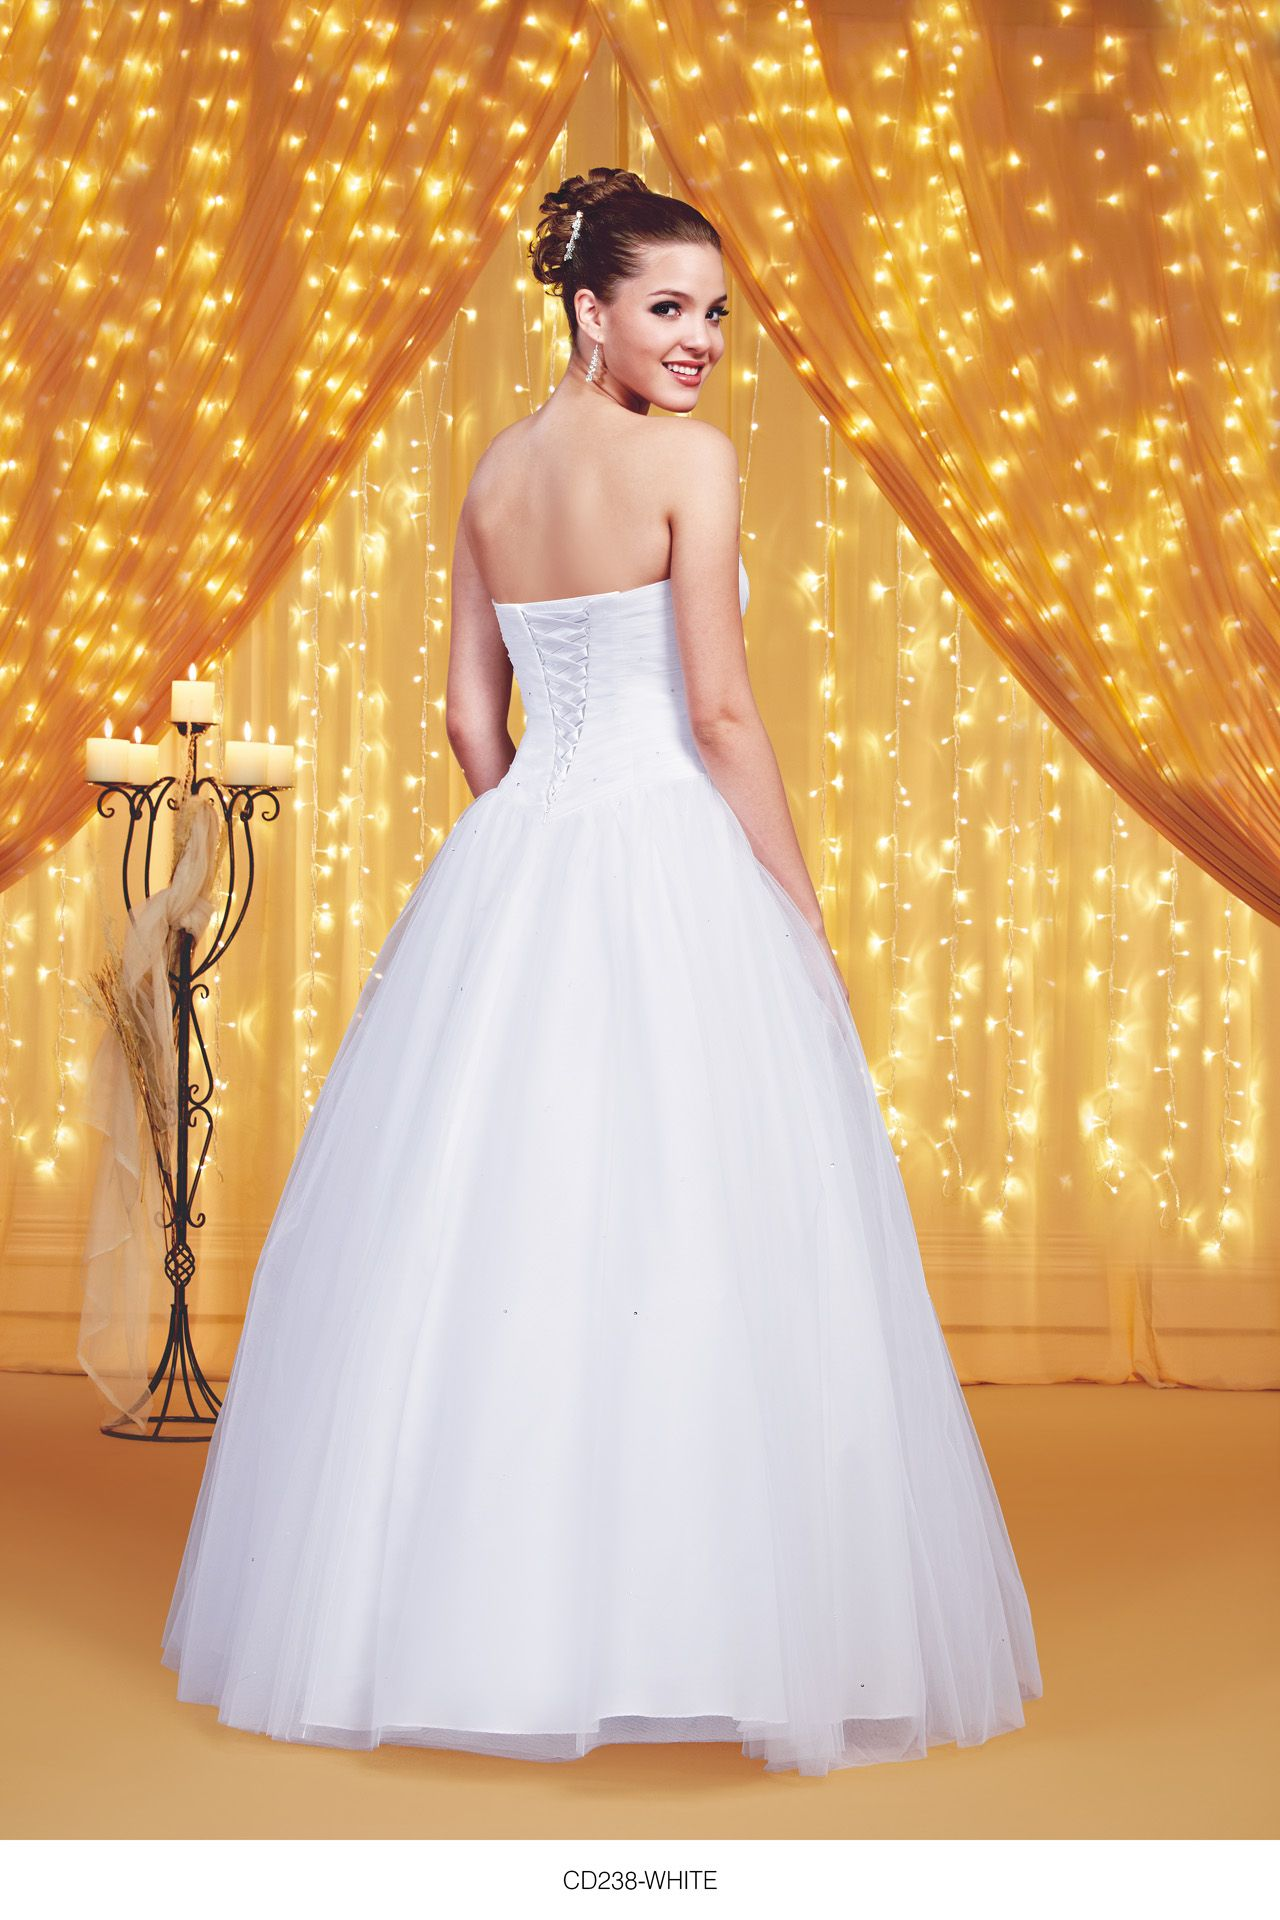 Debutante dress with gorgeous lace up back debutante dreams